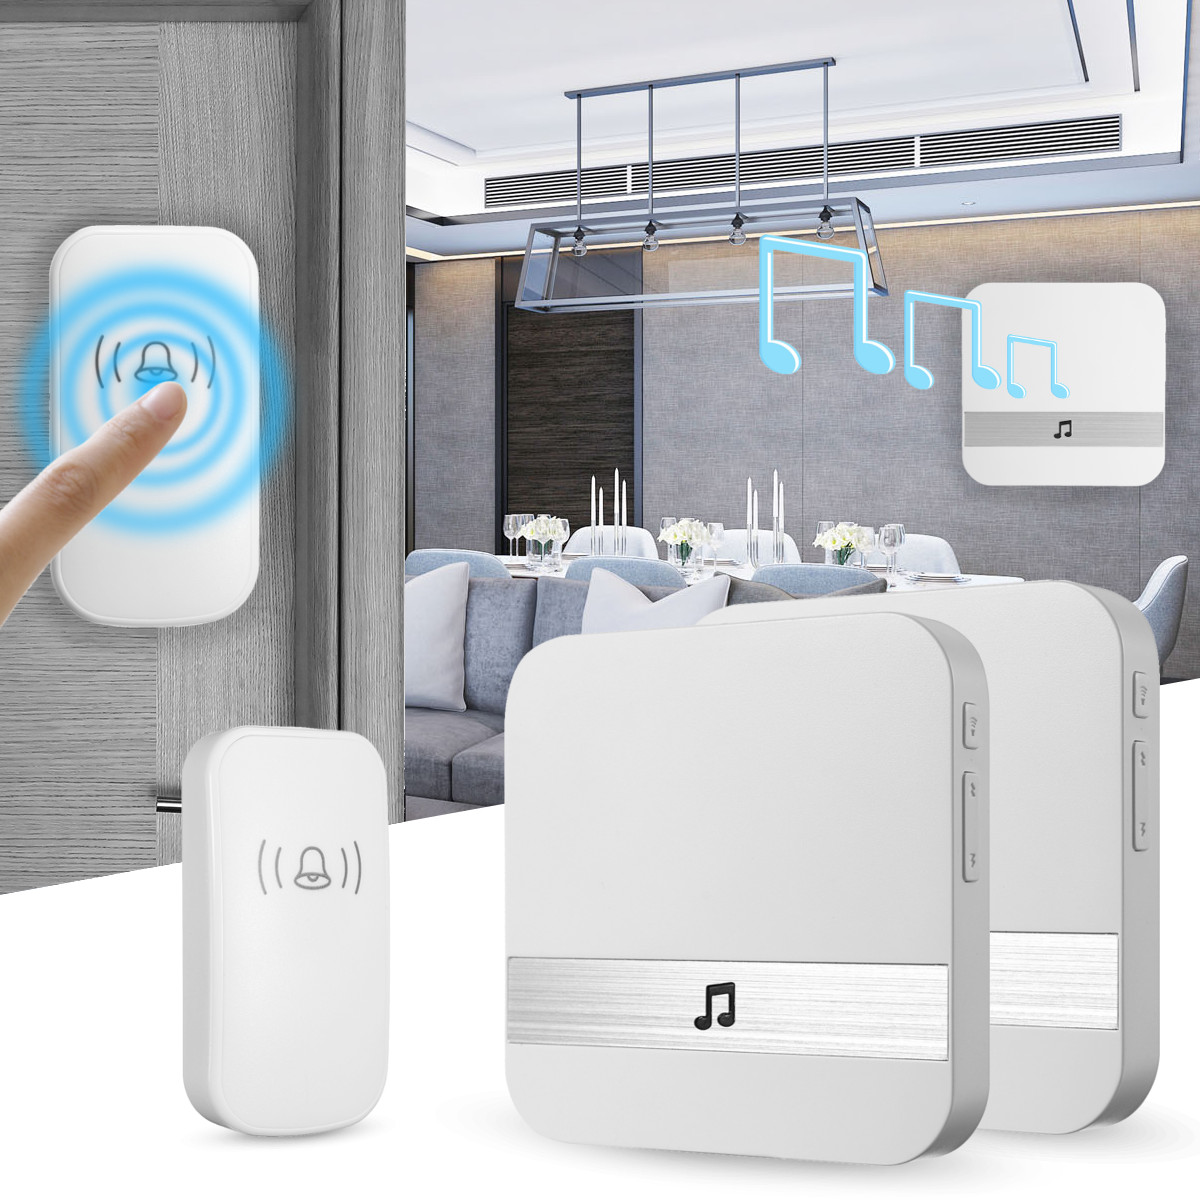 Home House 4 Volume Wireless Doorbell Chime 2 Plugin Re